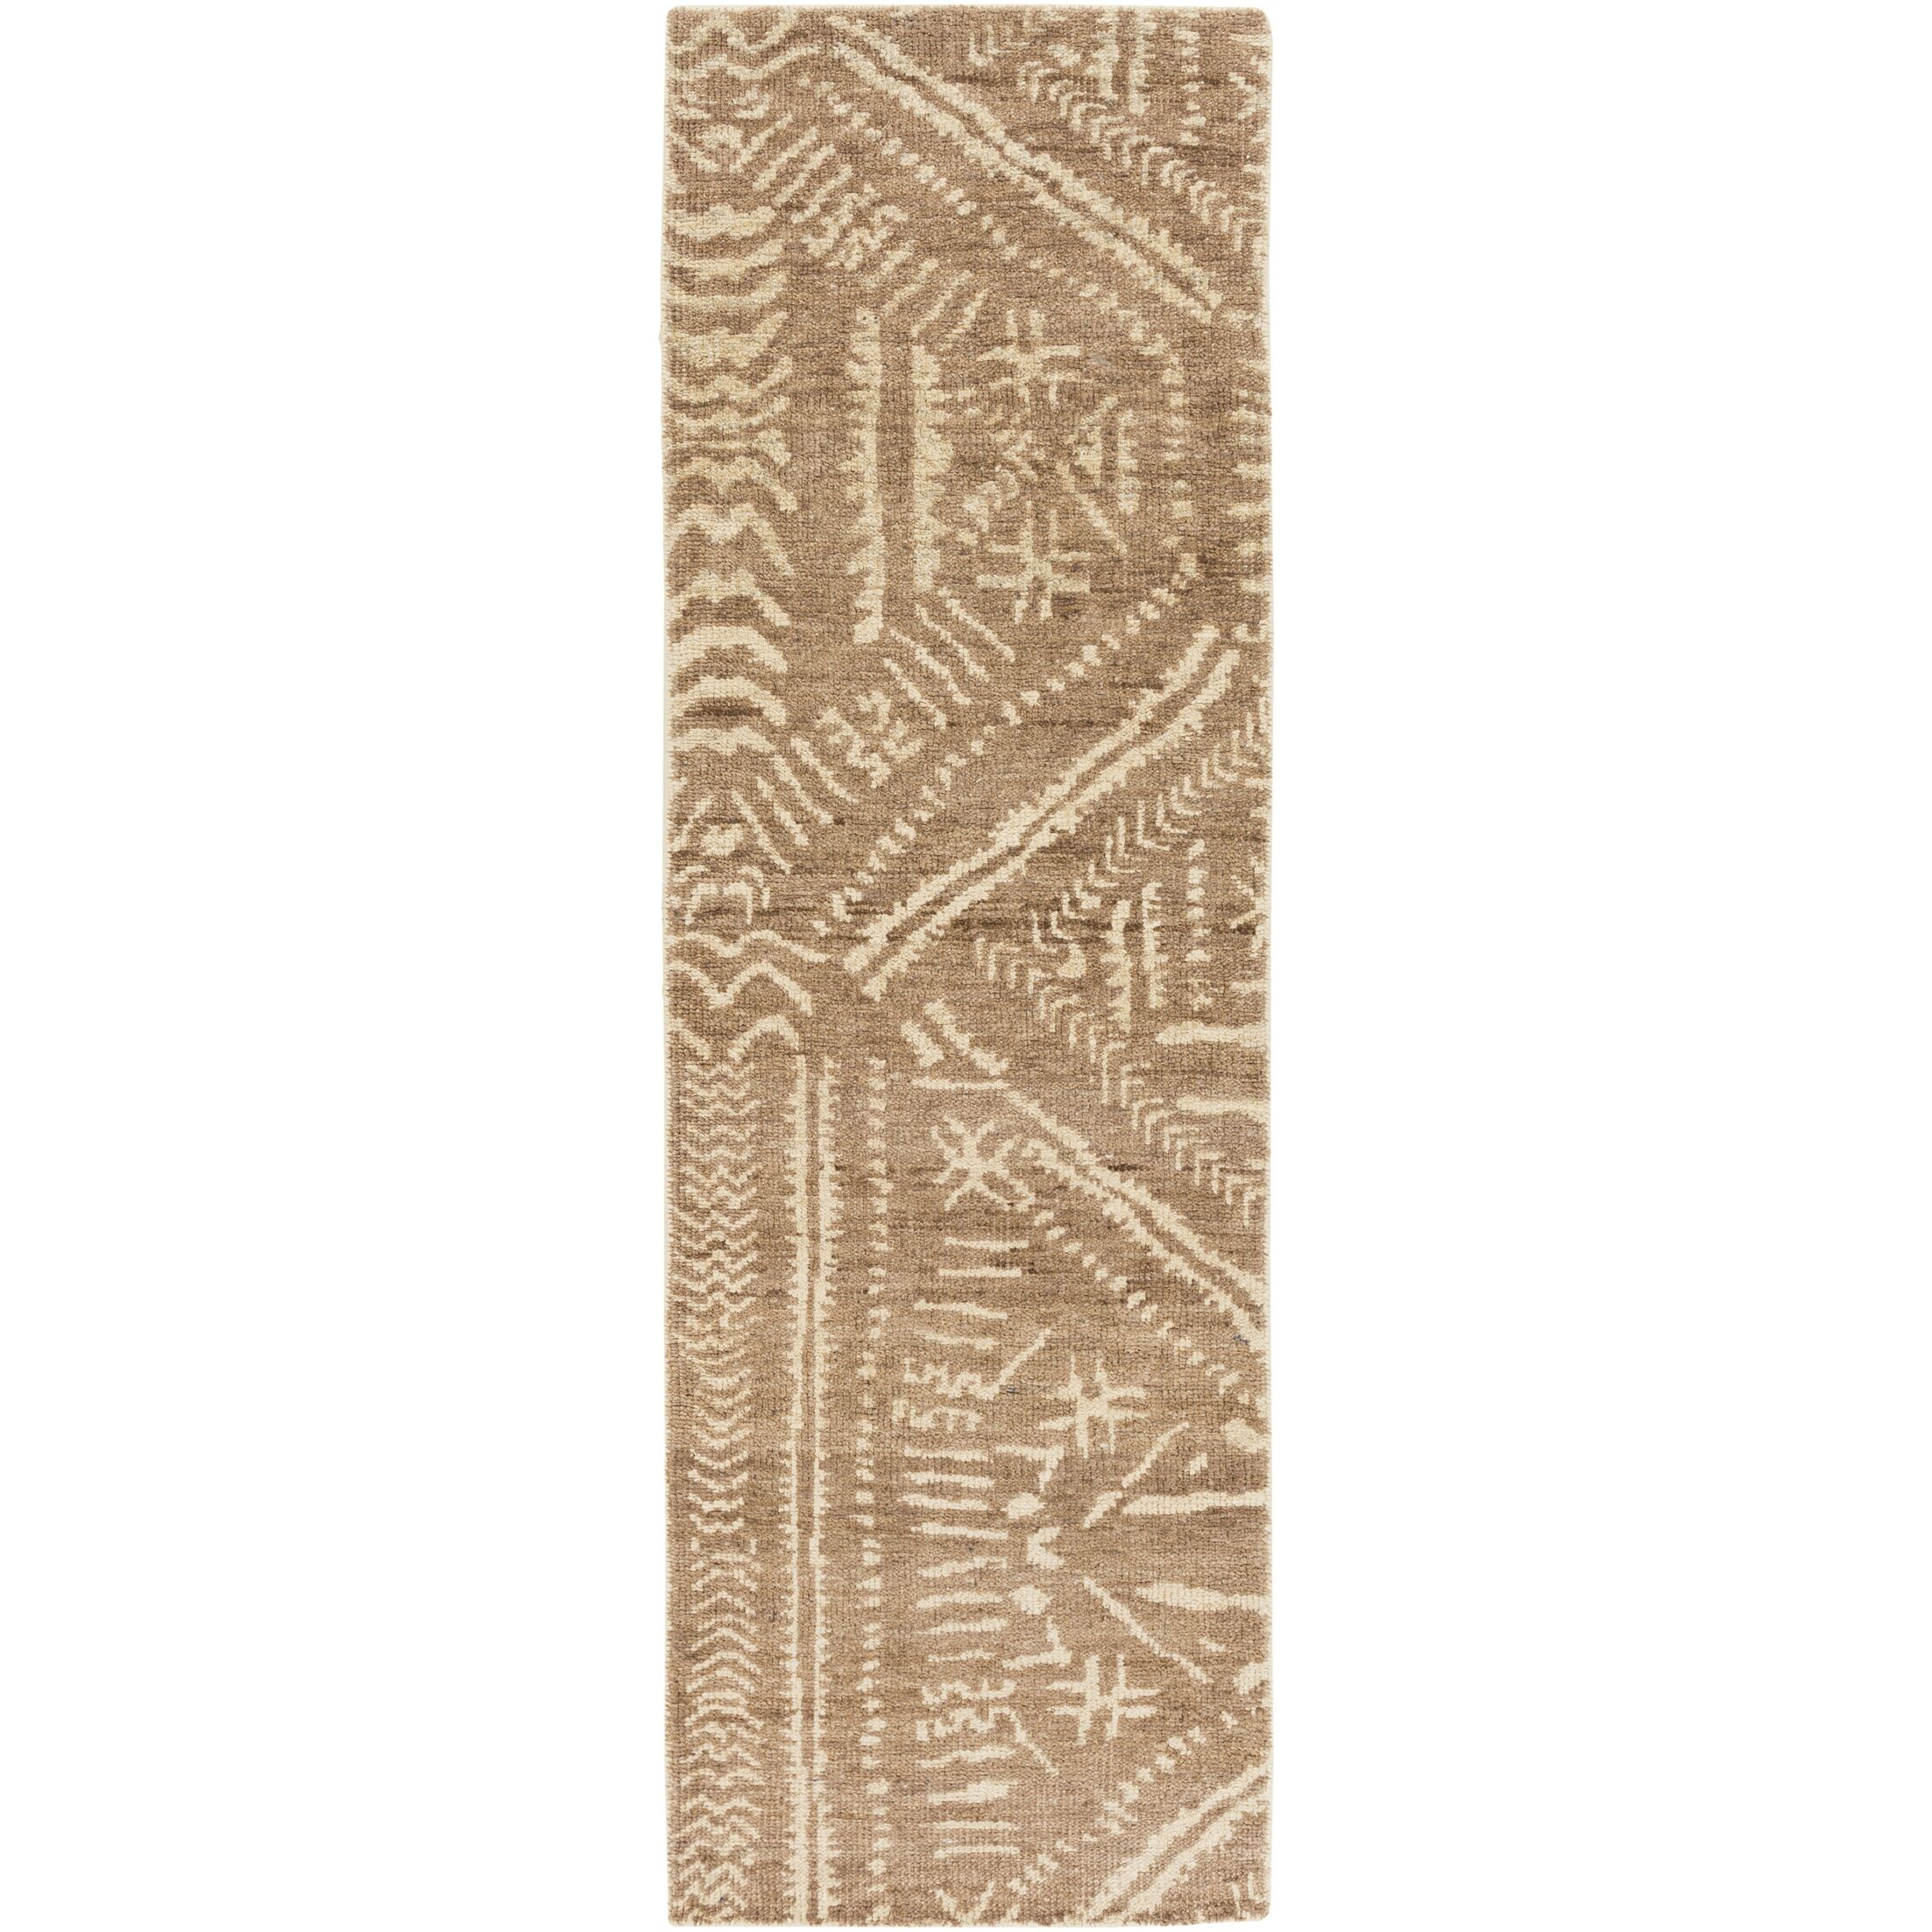 Amerie Hand-Knotted Dark Brown/ Cream Area Rug Rug Size: Runner 2'6